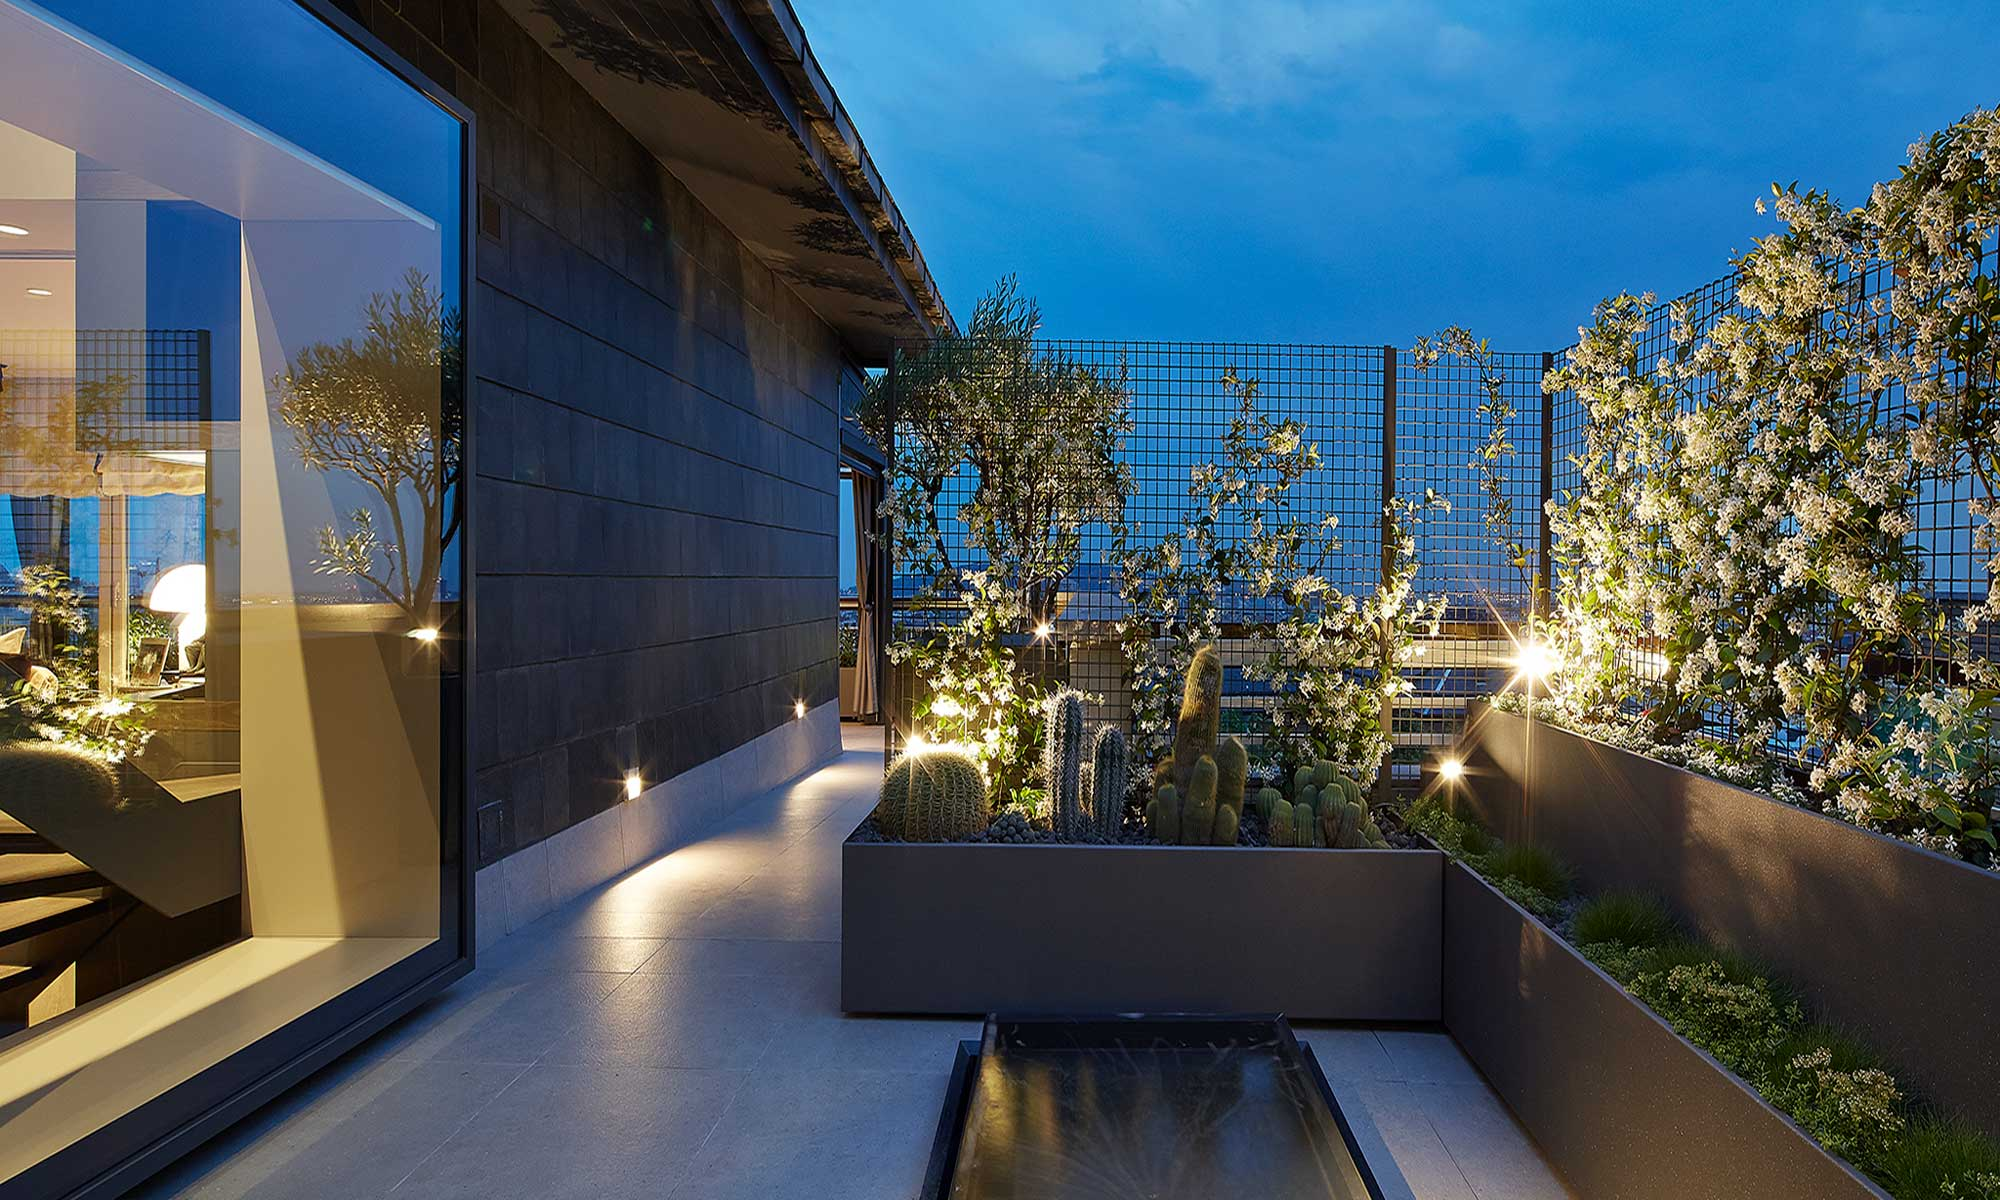 Urban garden design night | Molins Design interior designers